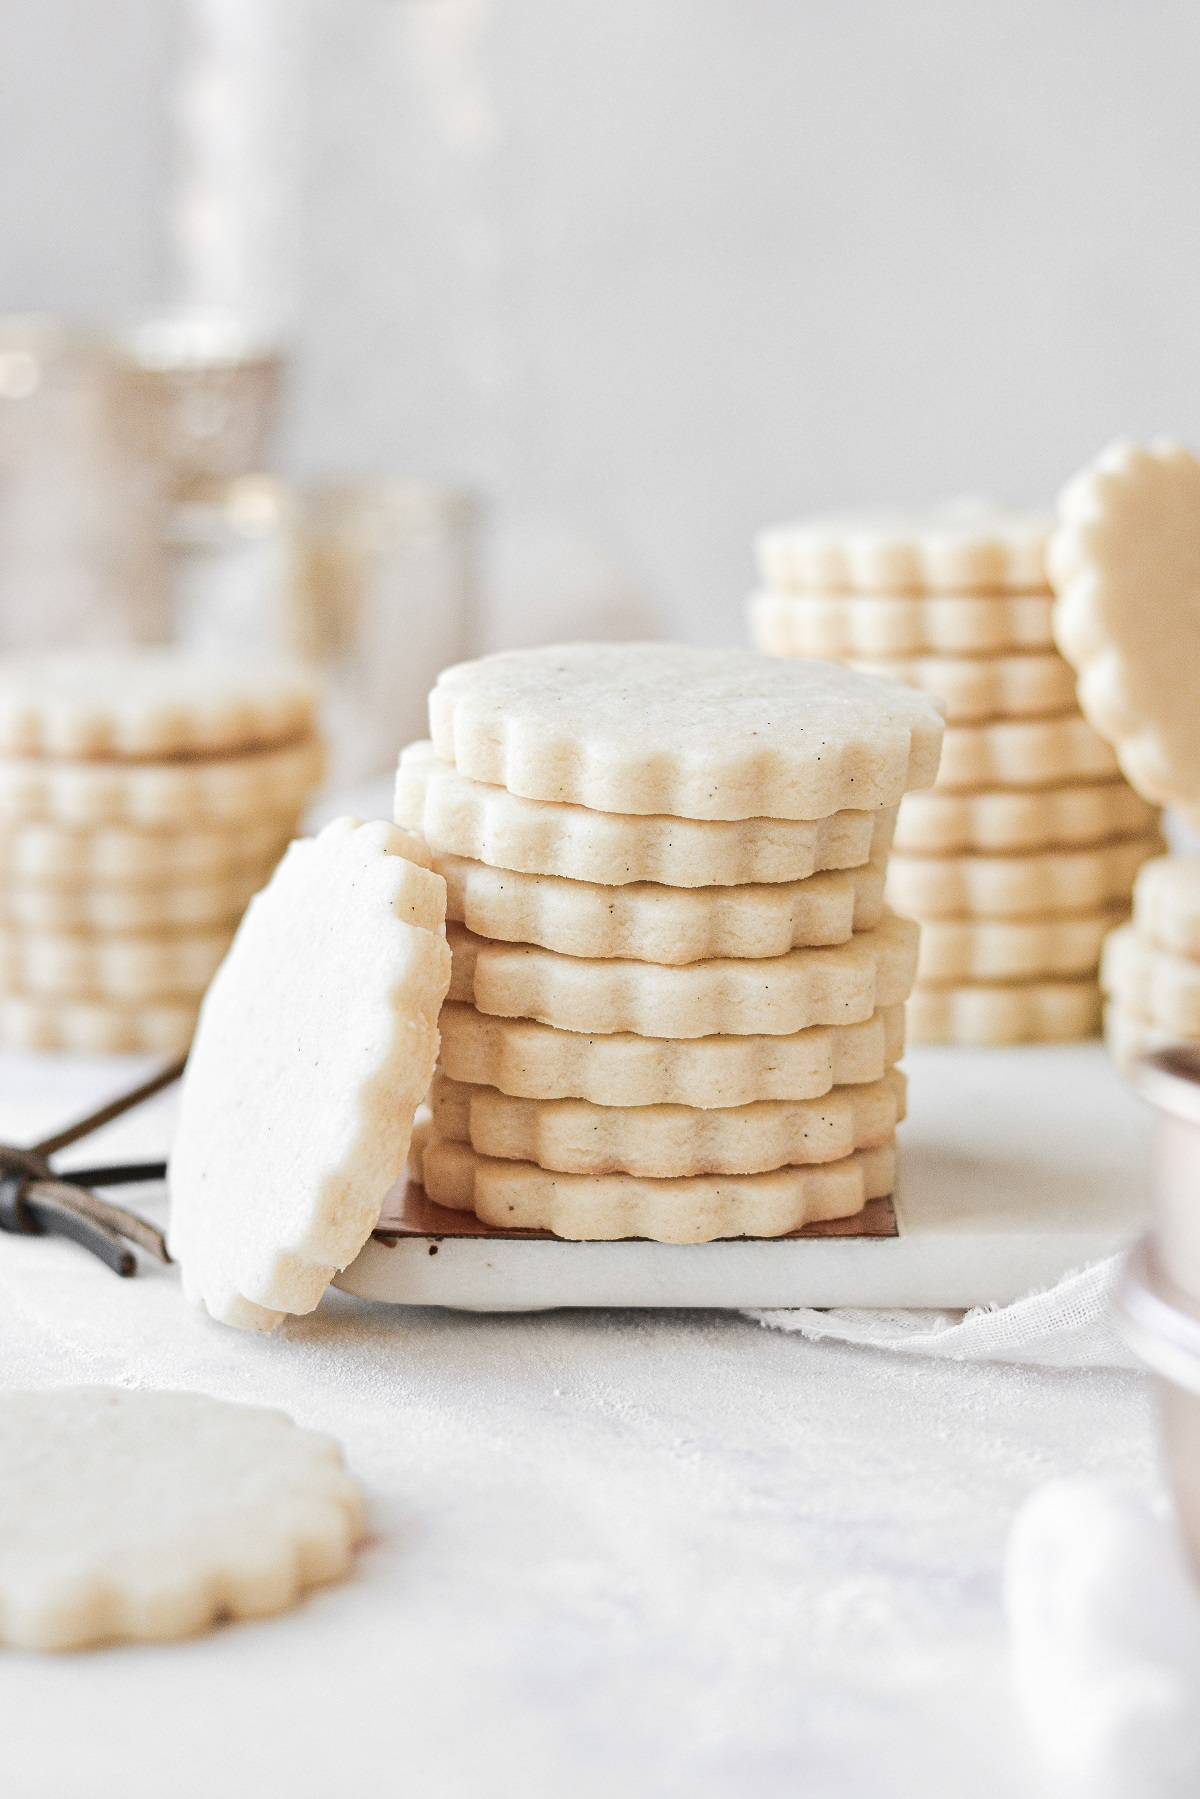 A stack of shortbread cookies.